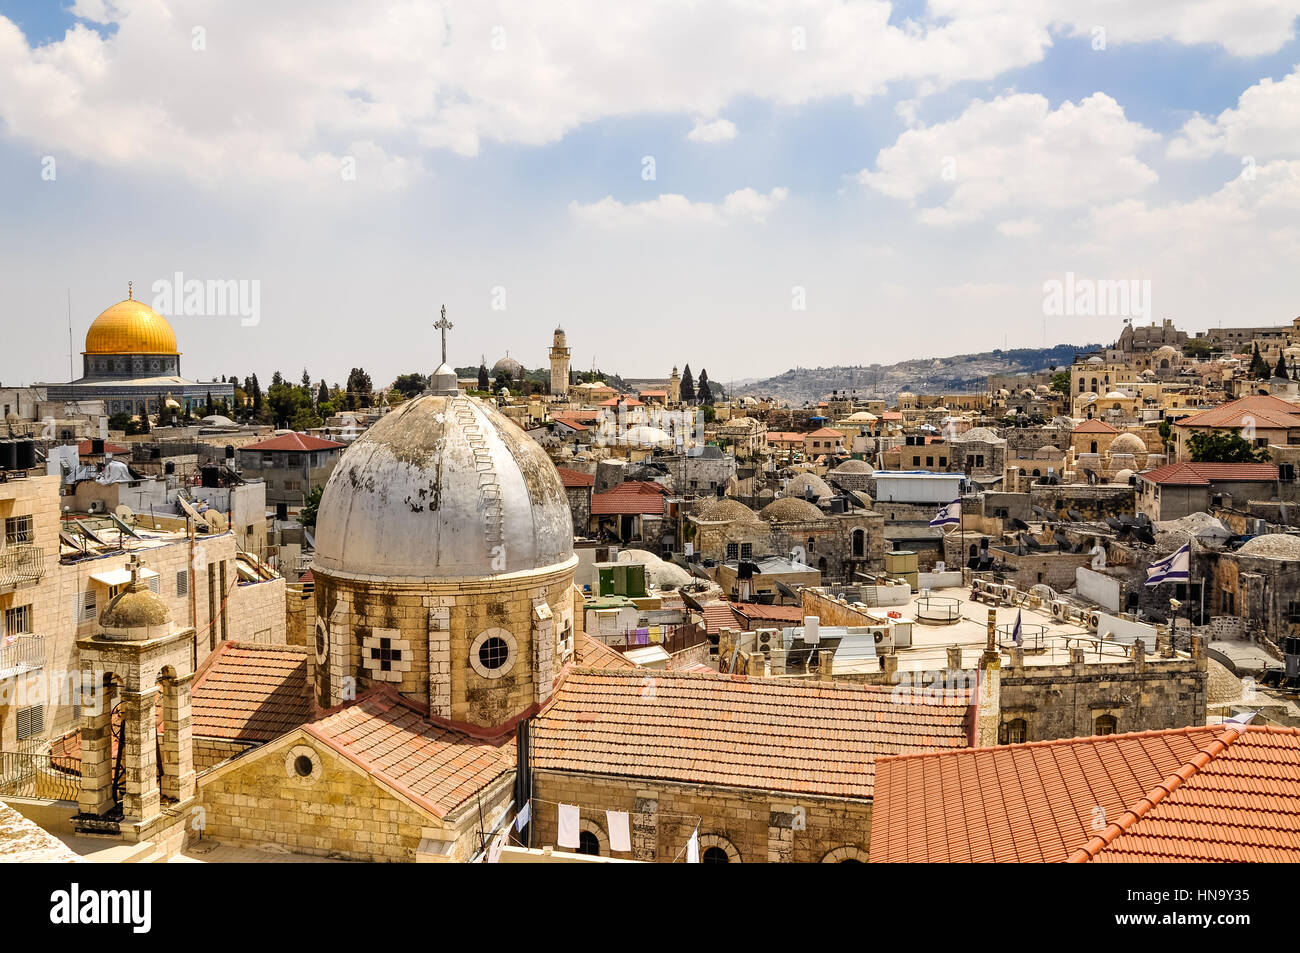 Old City of Jerusalem from Austrian Hospice Roof, Israel/Palestine - Stock Image